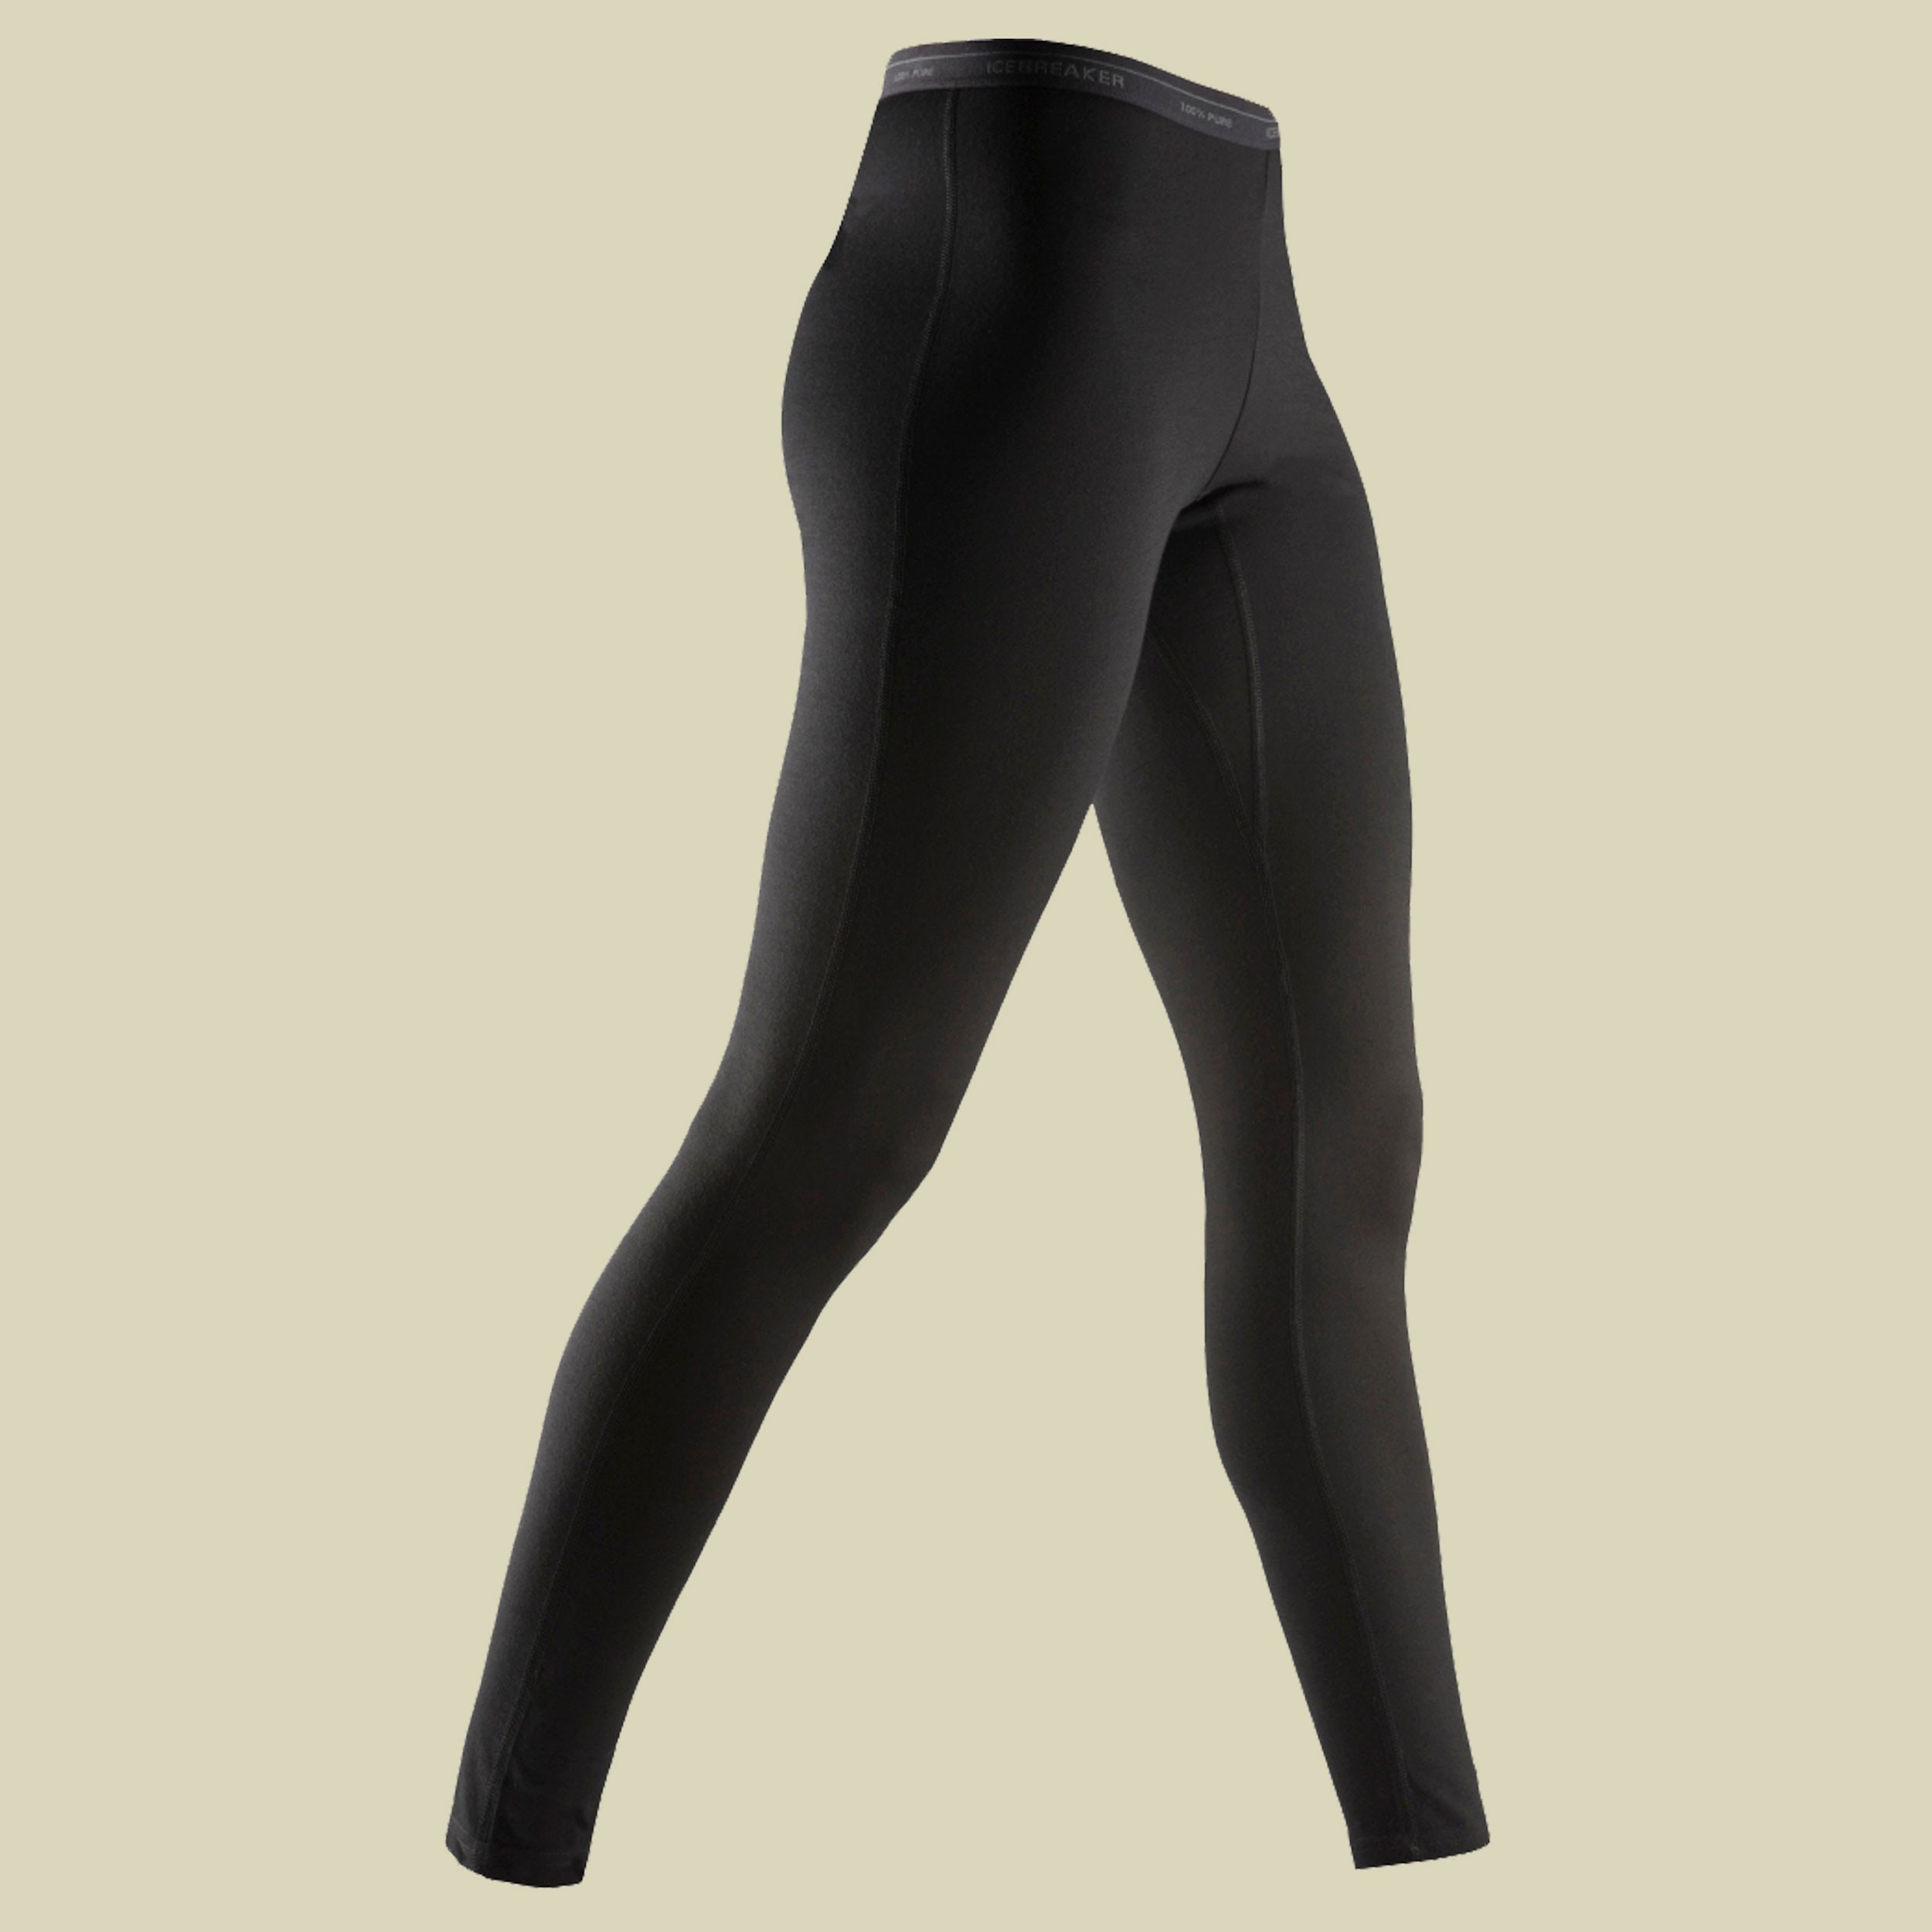 BF 200 Legging Women